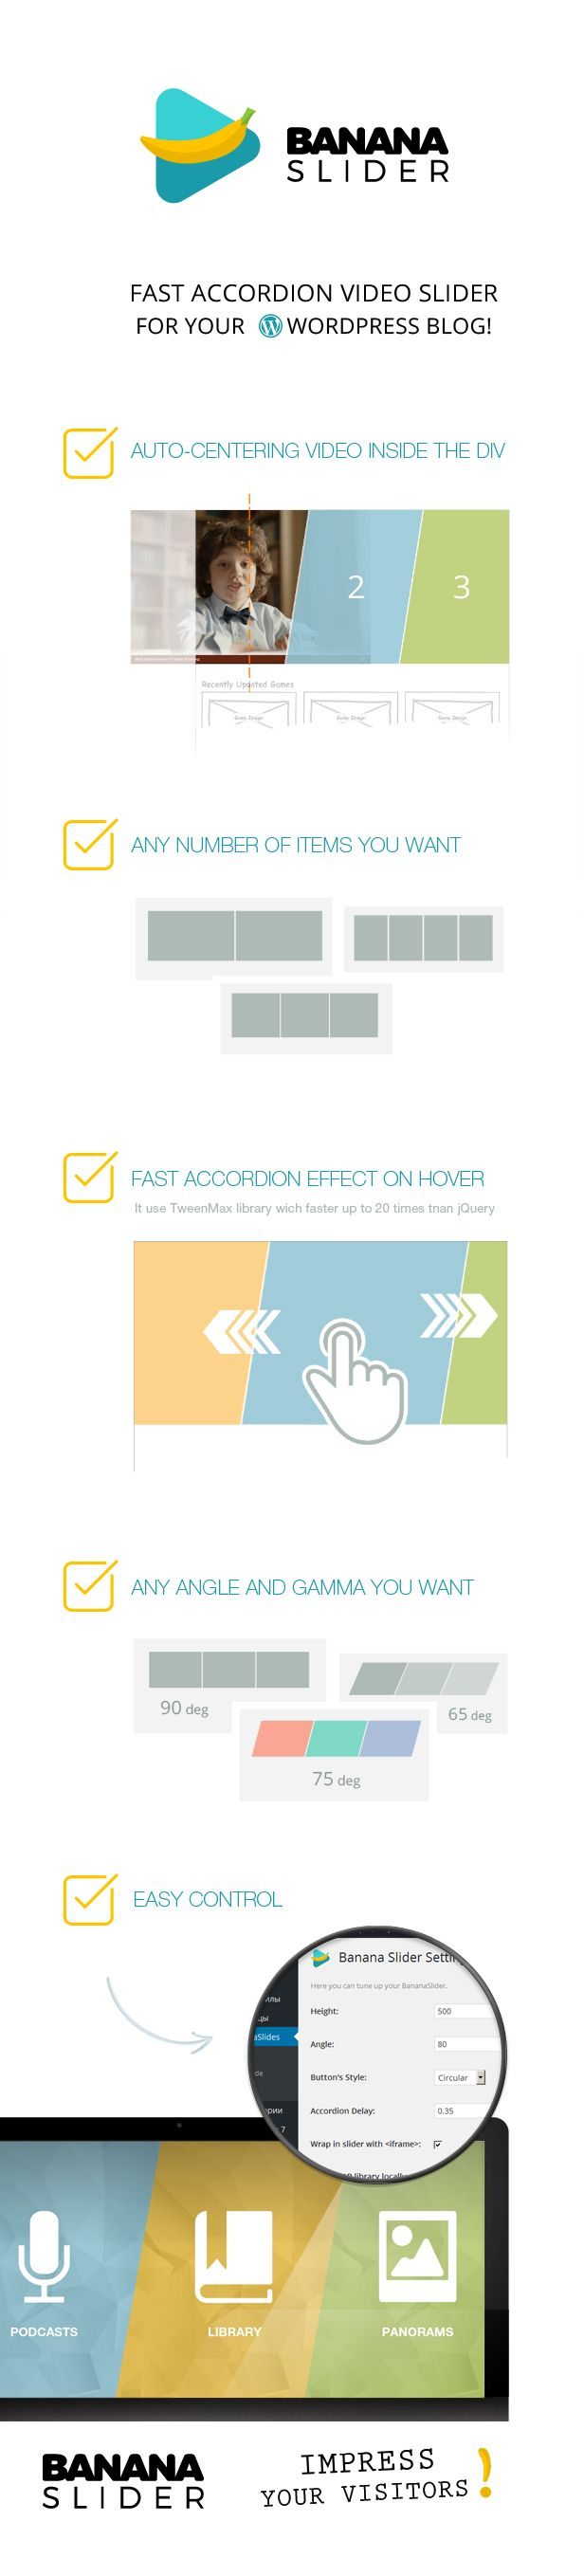 Meet Banana Slider WP example 1 | example 2 | example 3 | example 4  Banana Slider – is a fast accordion slider with HTML5 video support for your site based on WordPress! It fast, because it use th...